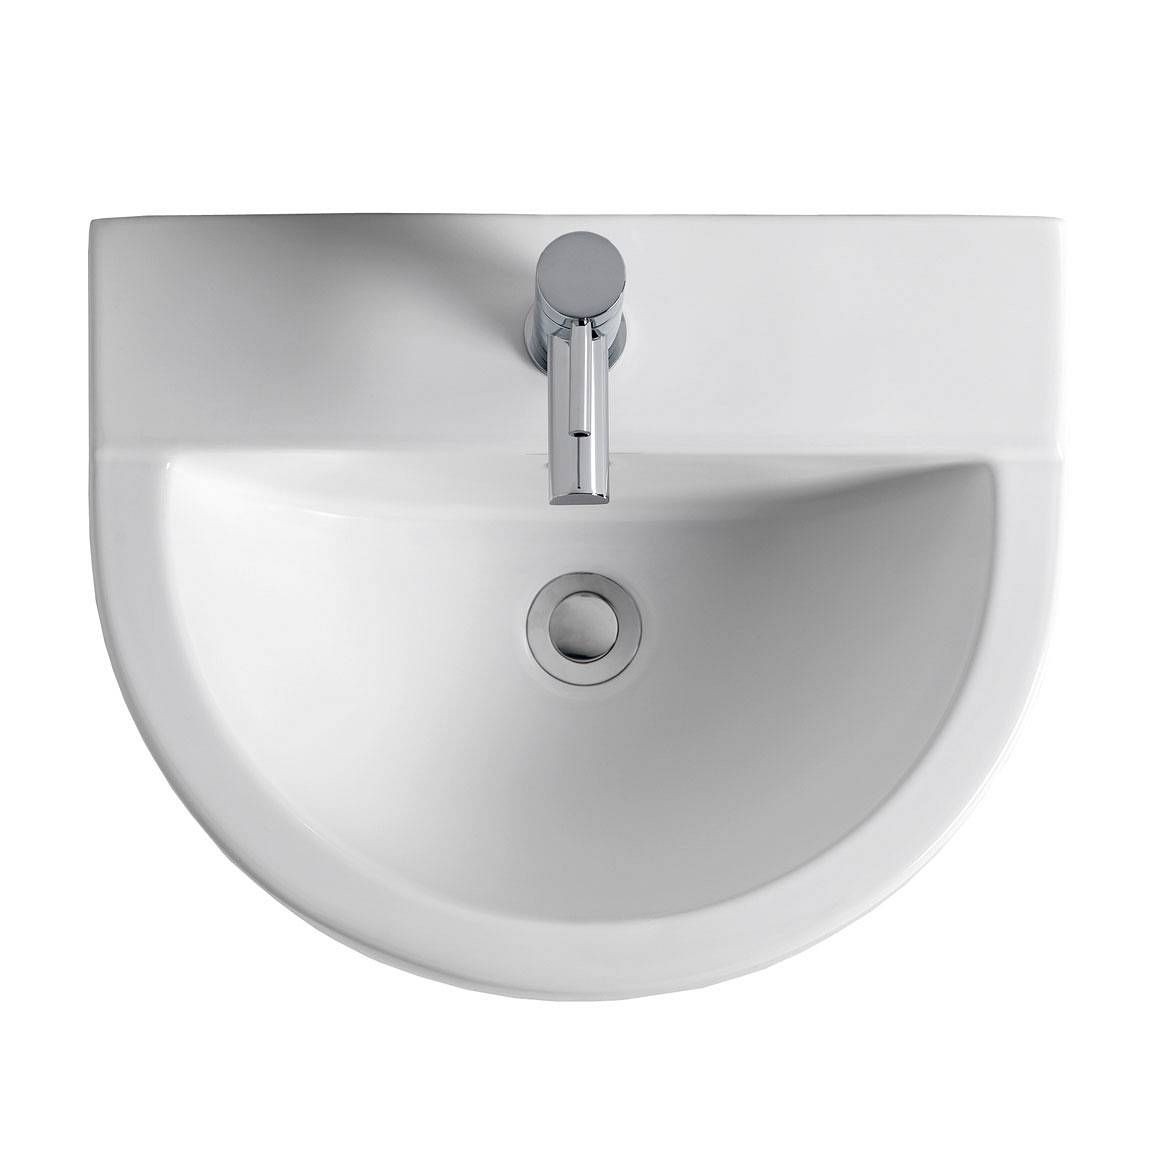 Bathroom sink top view - The Bath Co Camberley 2 Tap Hole Full Pedestal Basin 610mm